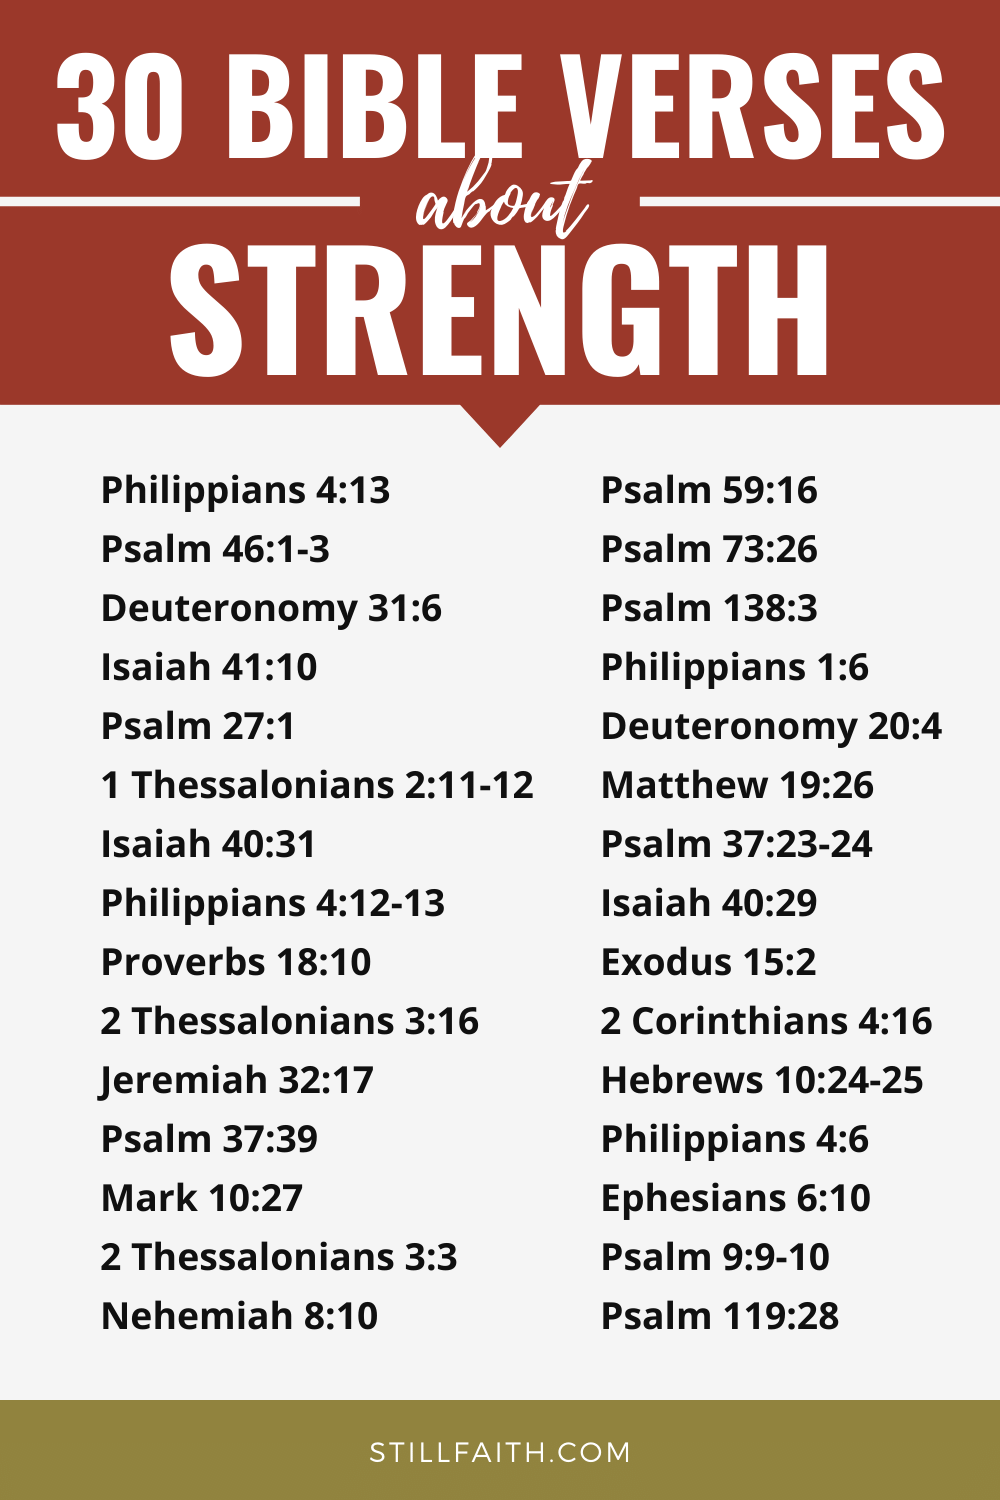 168 Bible Verses about Strength